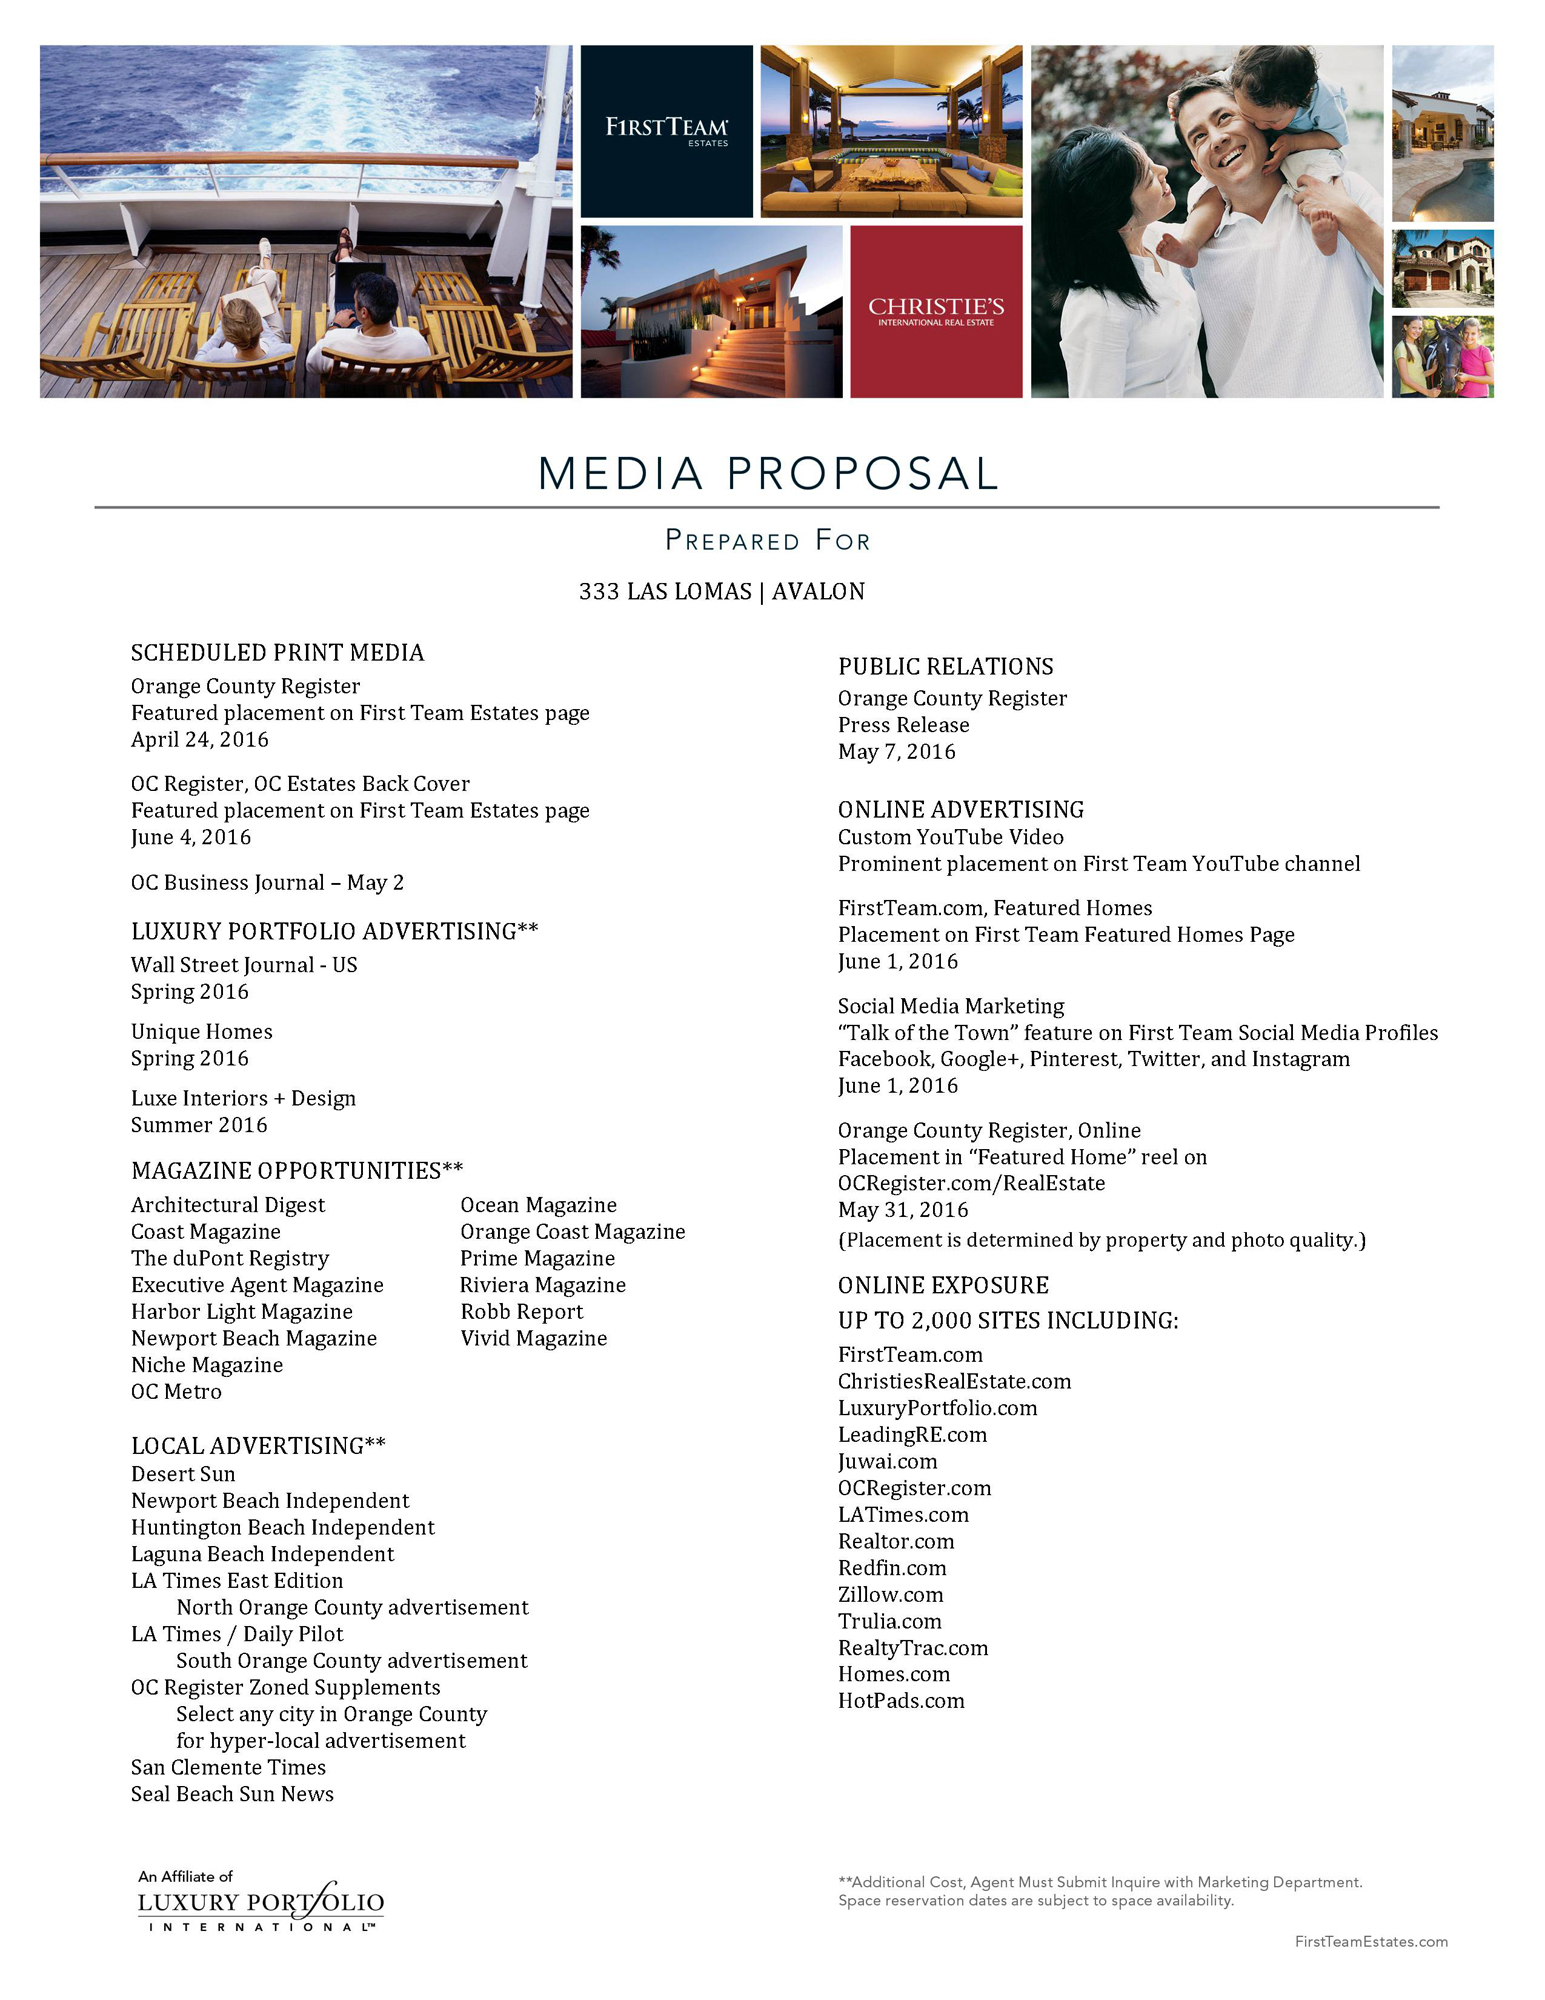 333 Las Lomas Media Proposal